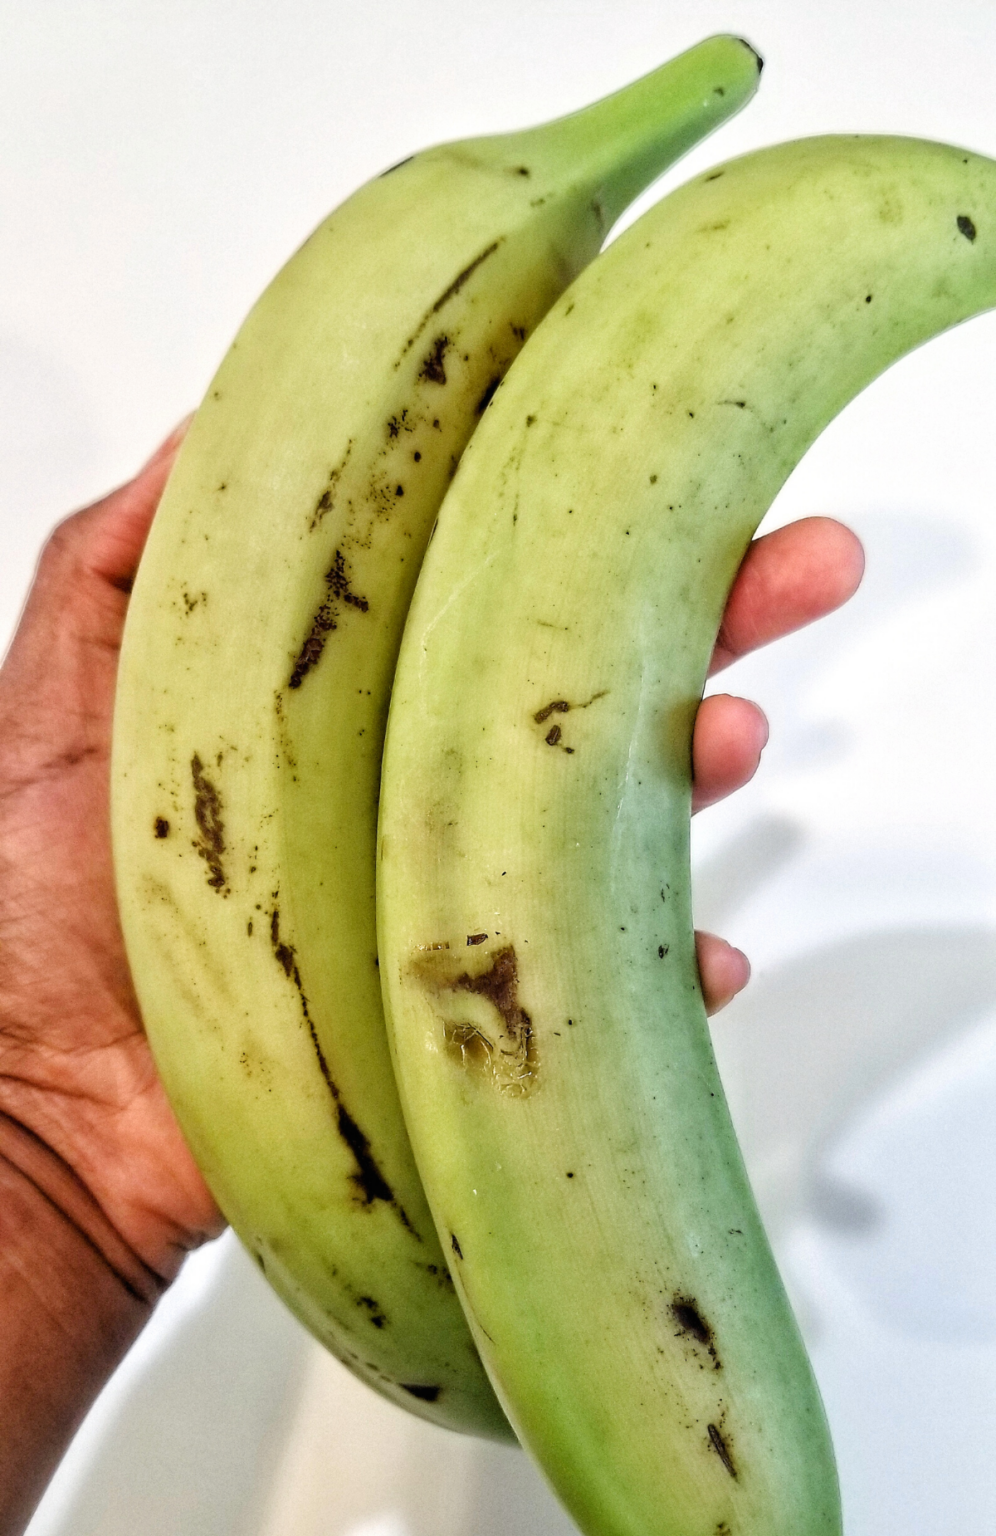 Two green plantains.